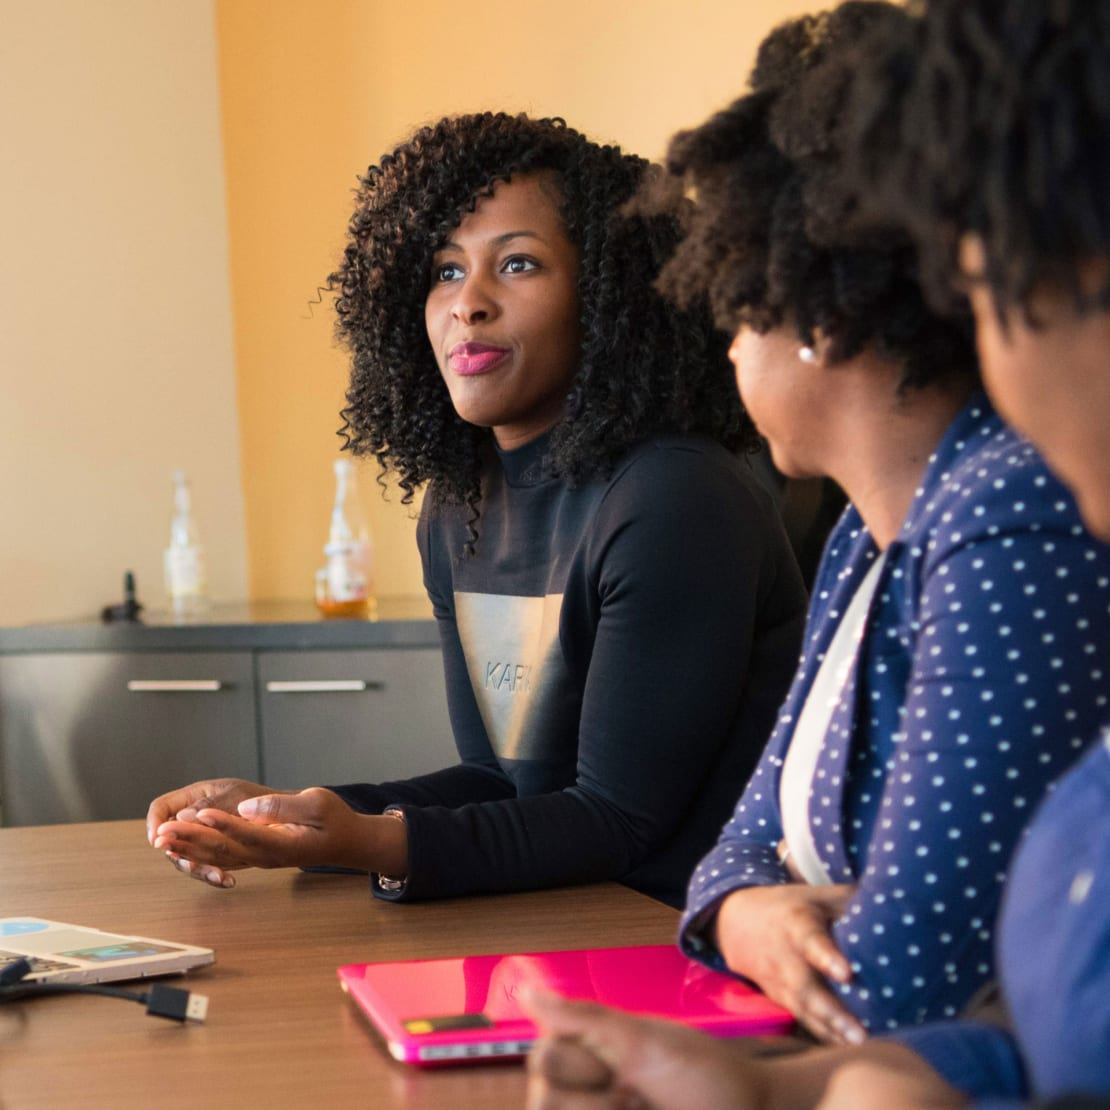 Woman sitting with health and social services colleagues at conference table